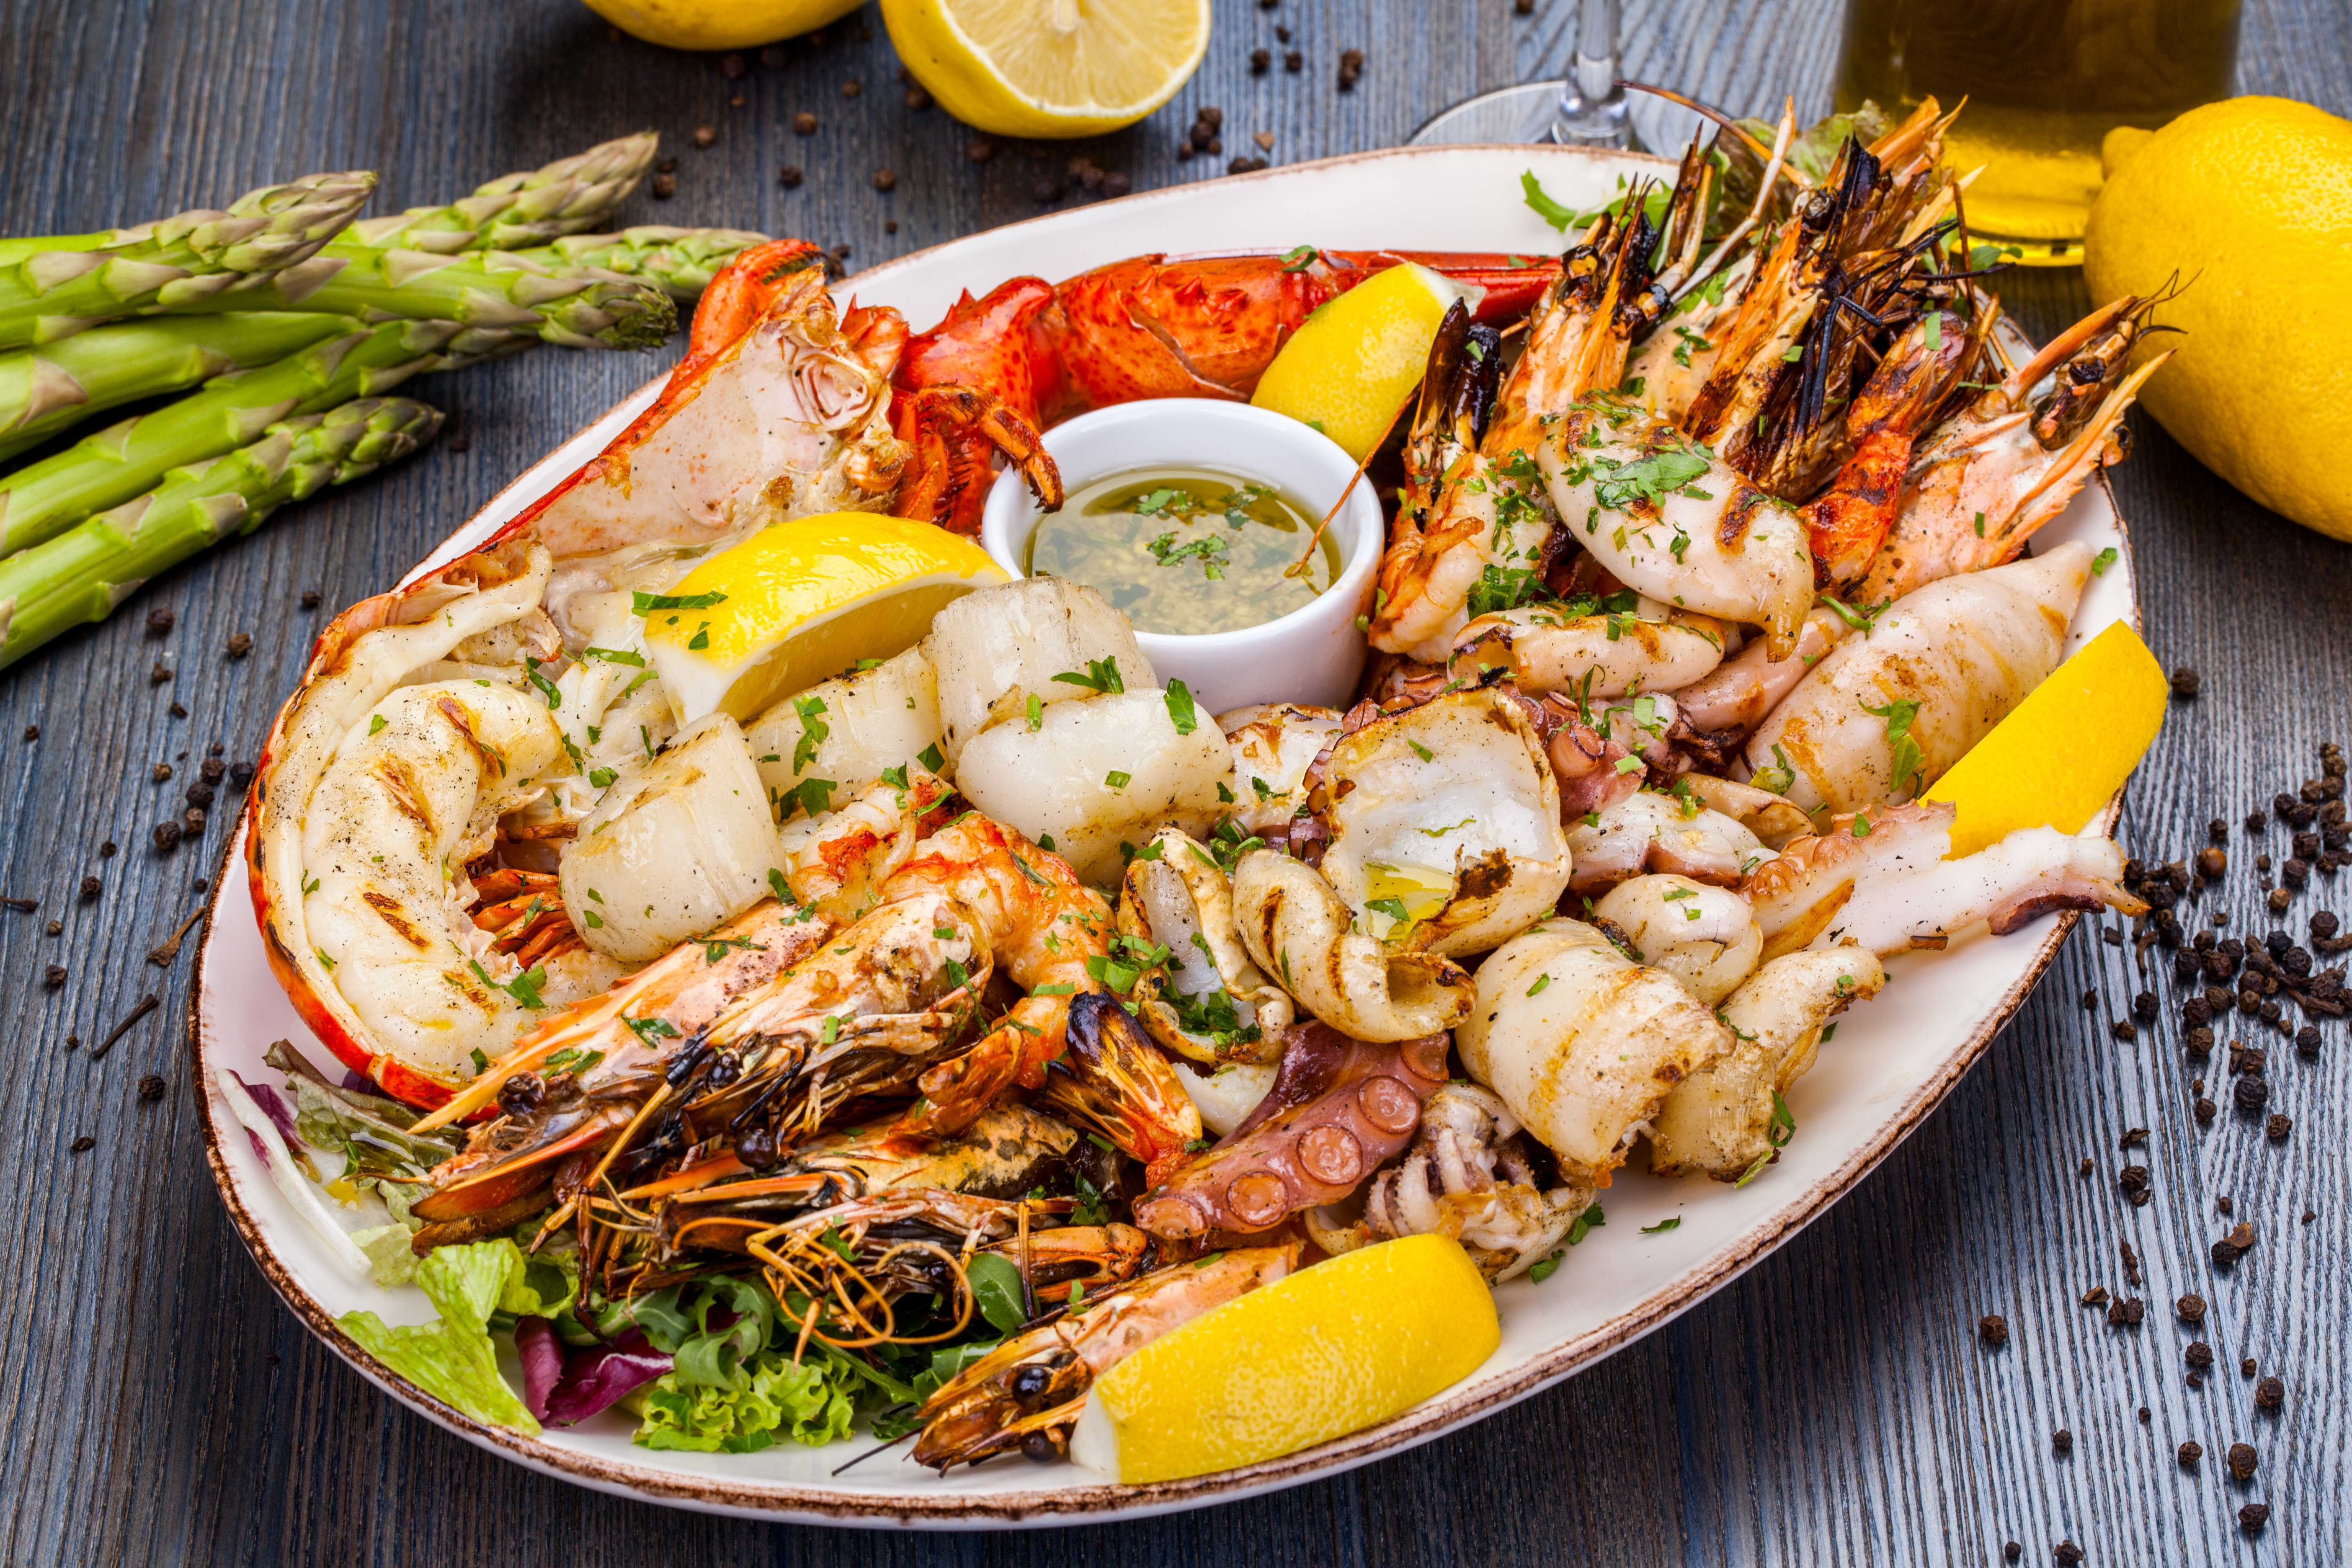 A Plate of Cooked Seafood